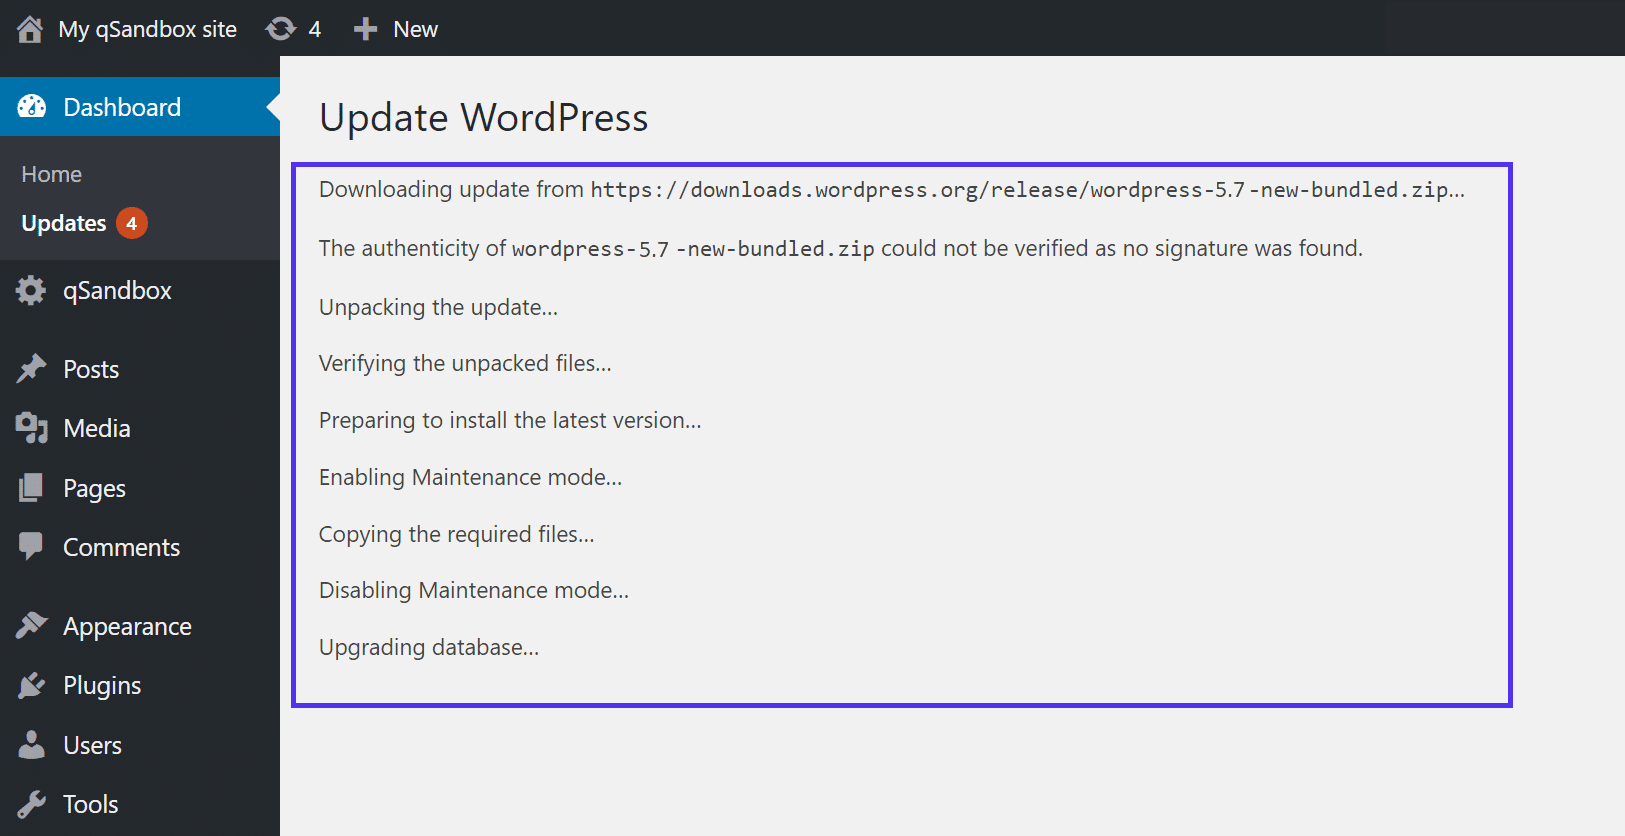 The info shown during a WordPress update.